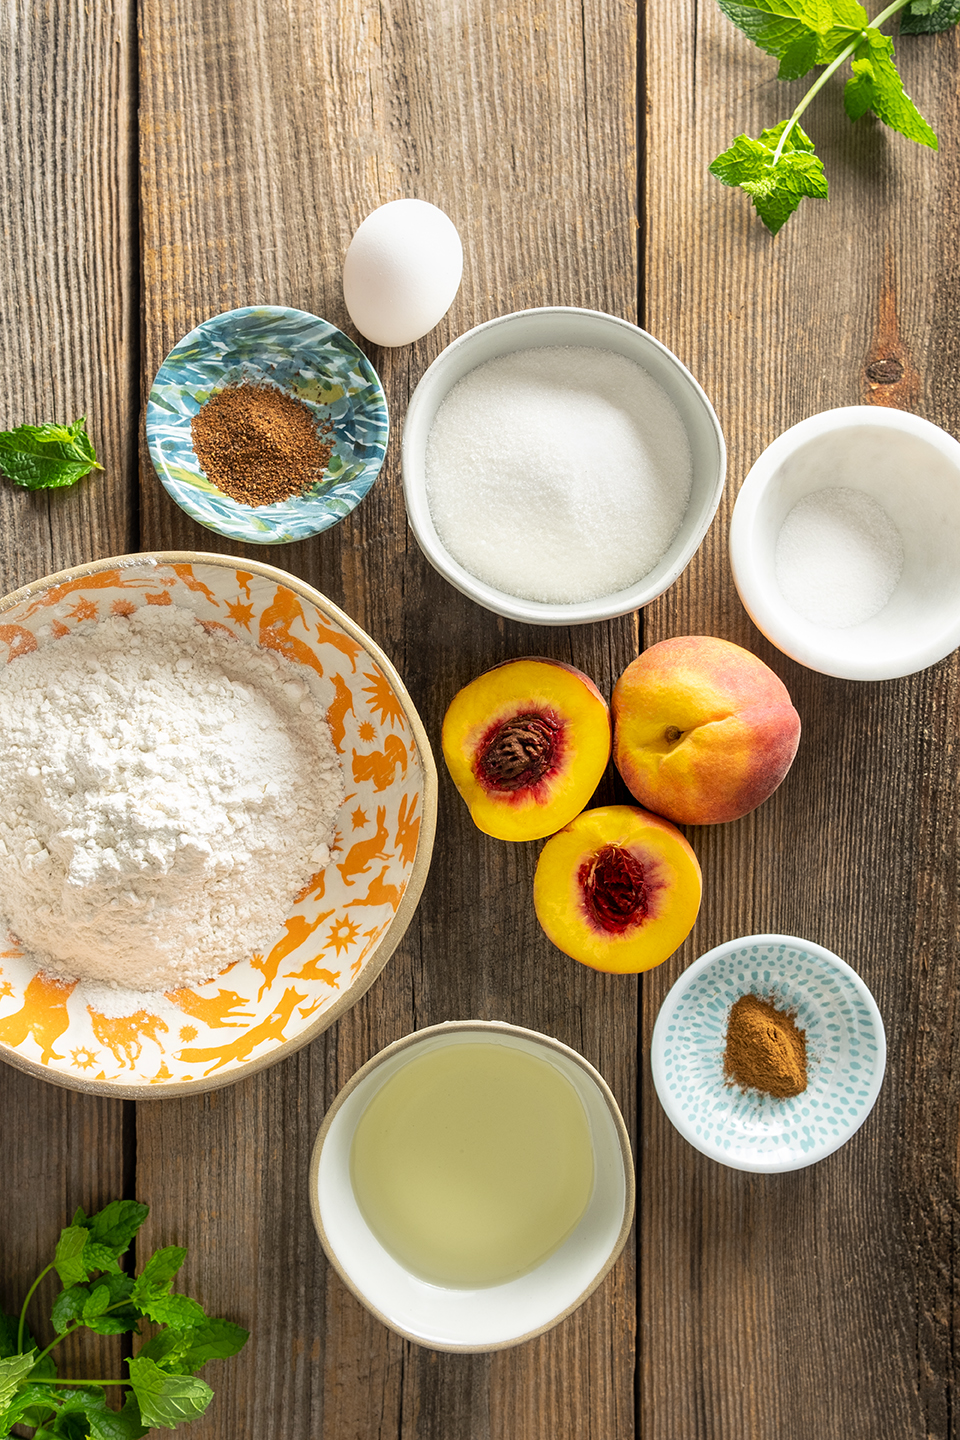 Ingredients for Classic Peach Crisp; flour, eggs, cinnamon, nutmeg, peaches, sugar and oil. Mint leaves on a rustic wooden background.